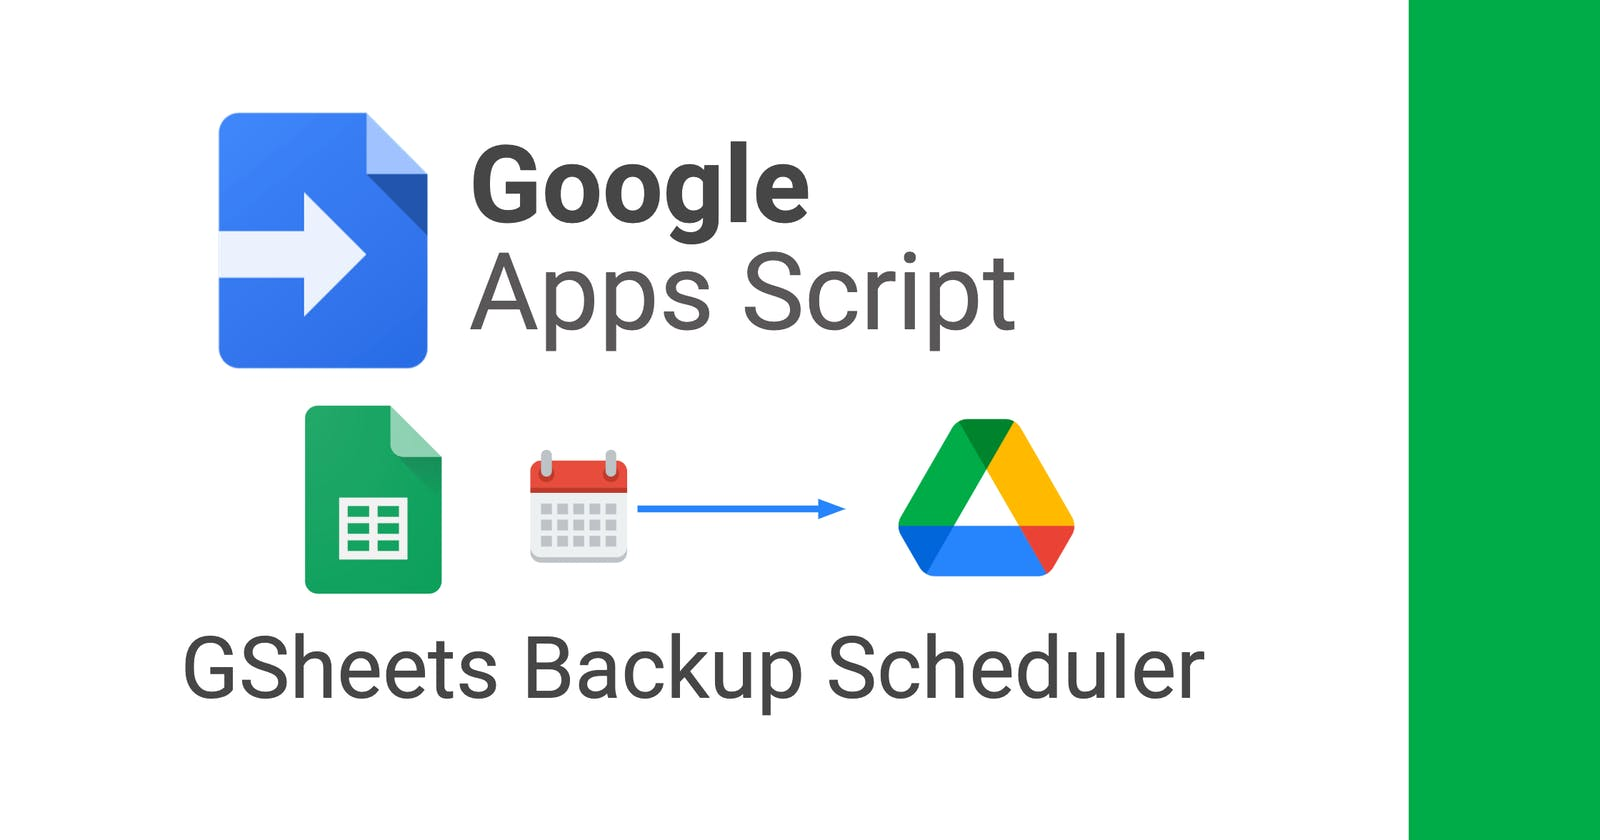 Creating a Scheduled Backup Service for Google Sheets using Apps Script.